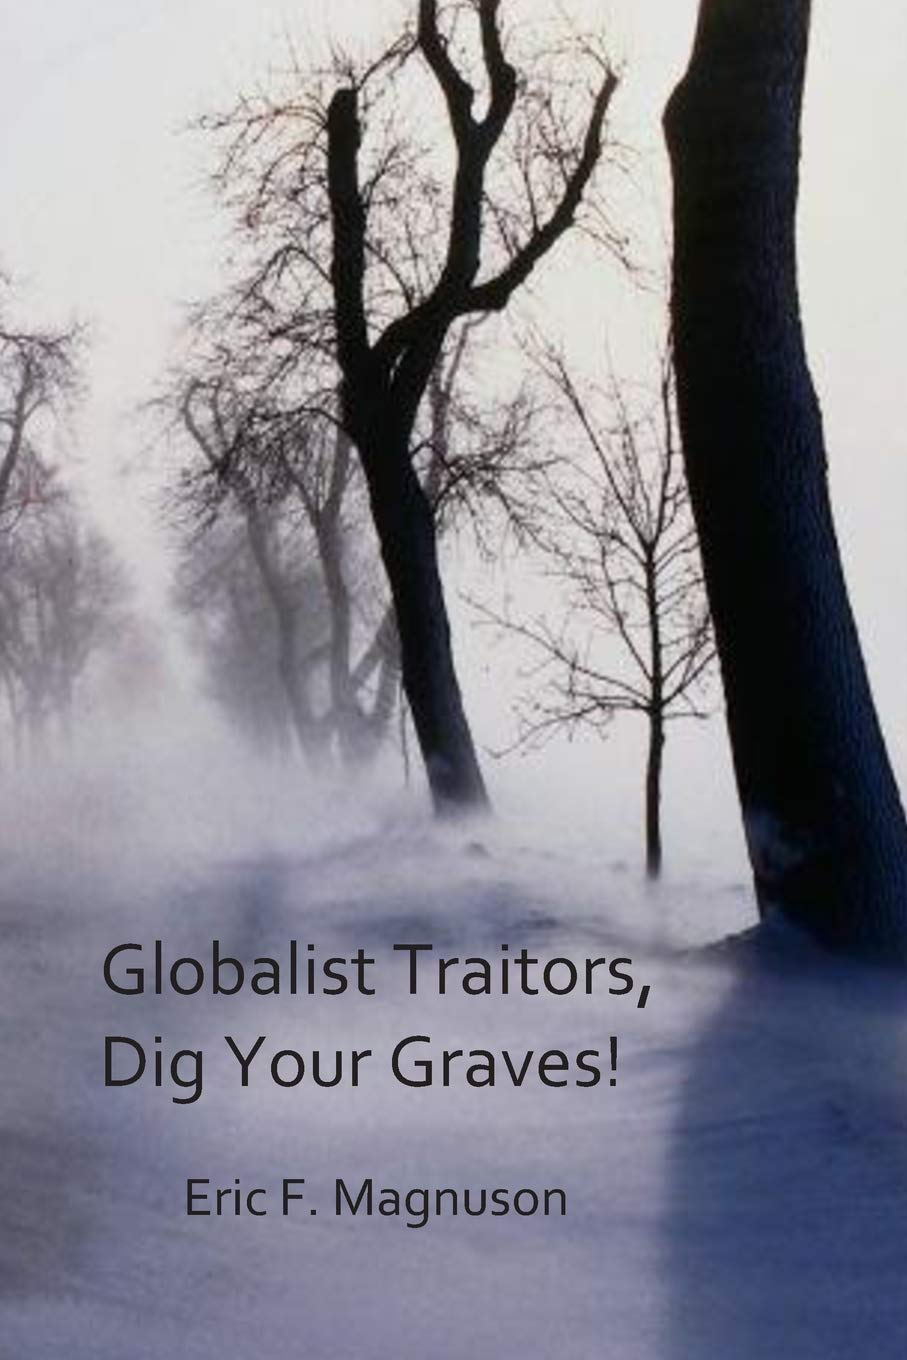 Globalist Traitors, Dig Your Graves